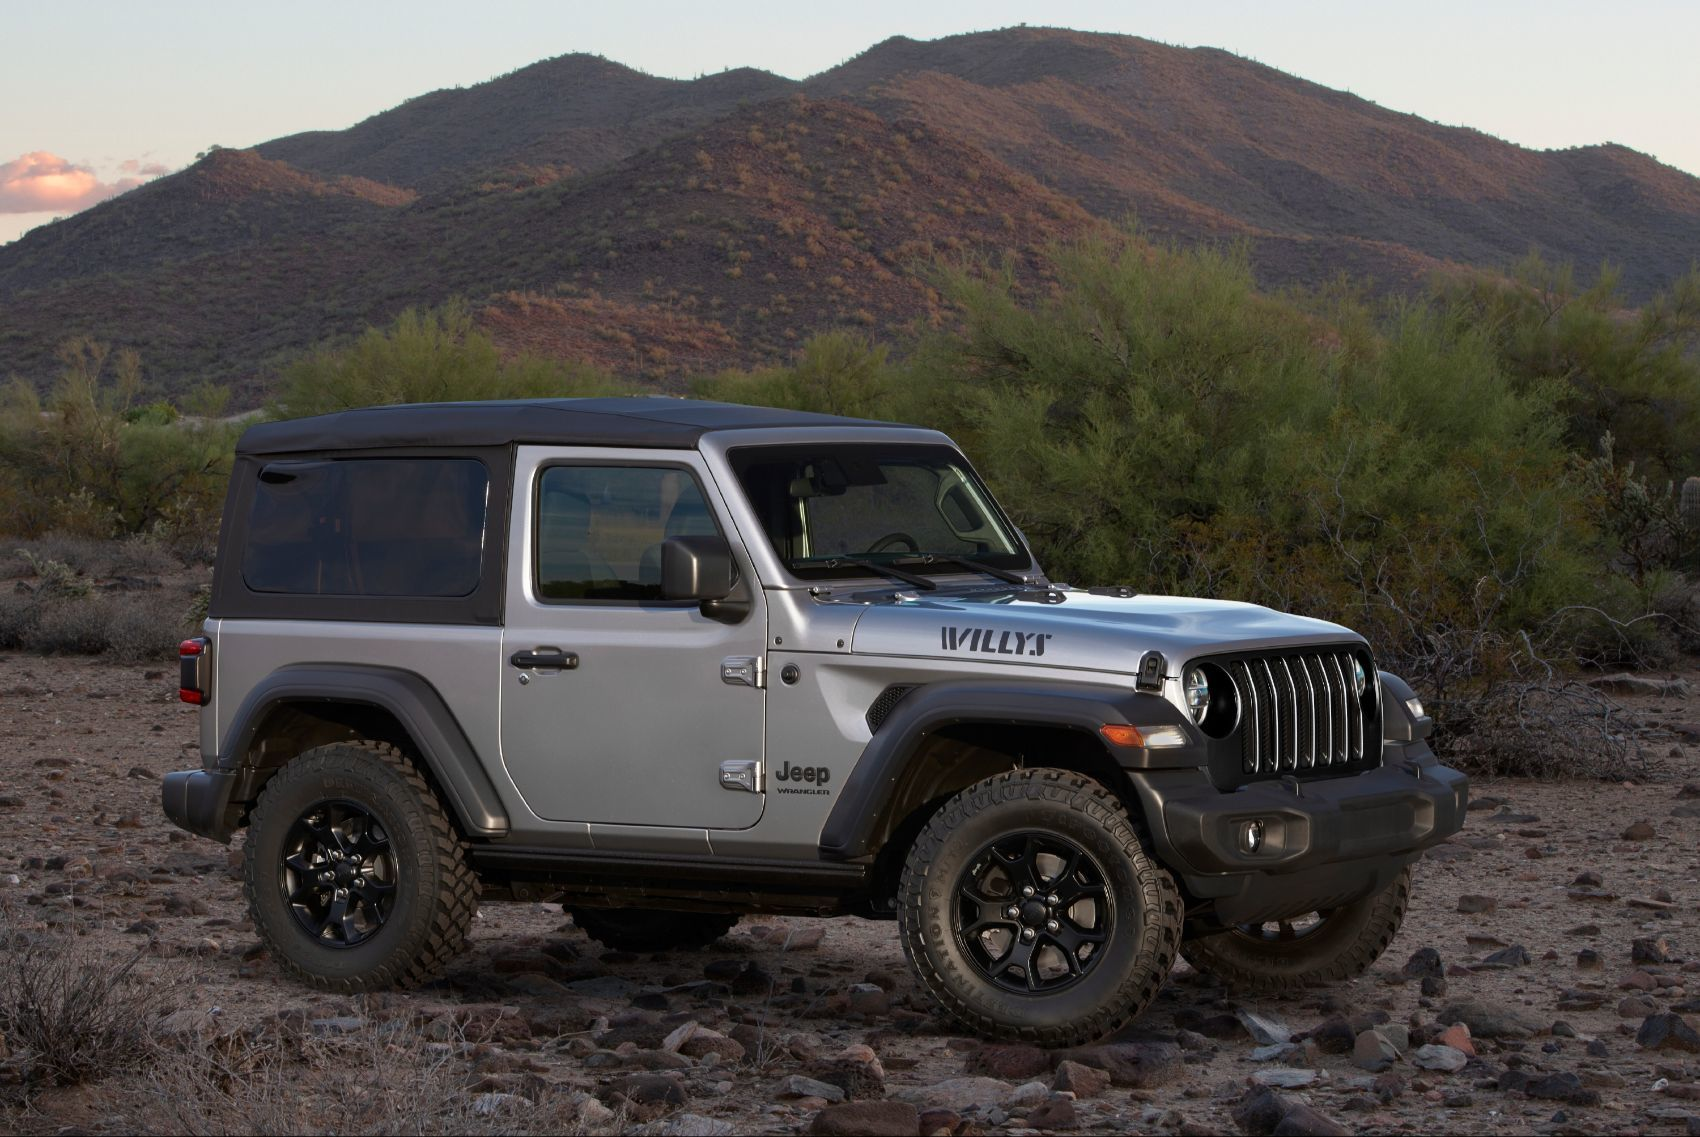 2020 Jeep Wrangler Willys Black Tan Editions Are Coming